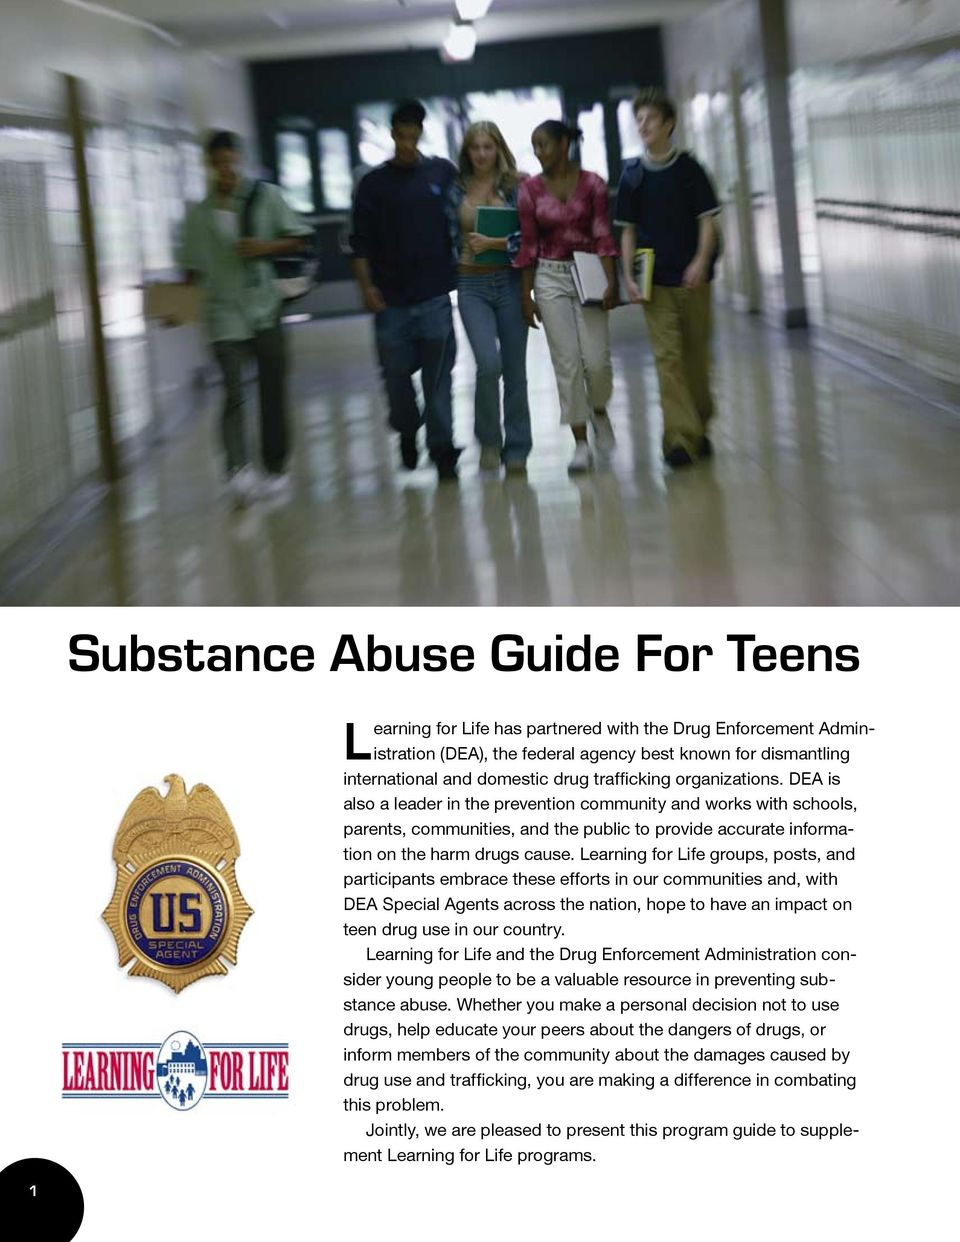 Learning for Life groups, posts, and participants embrace these efforts in our communities and, with DEA Special Agents across the nation, hope to have an impact on teen drug use in our country.